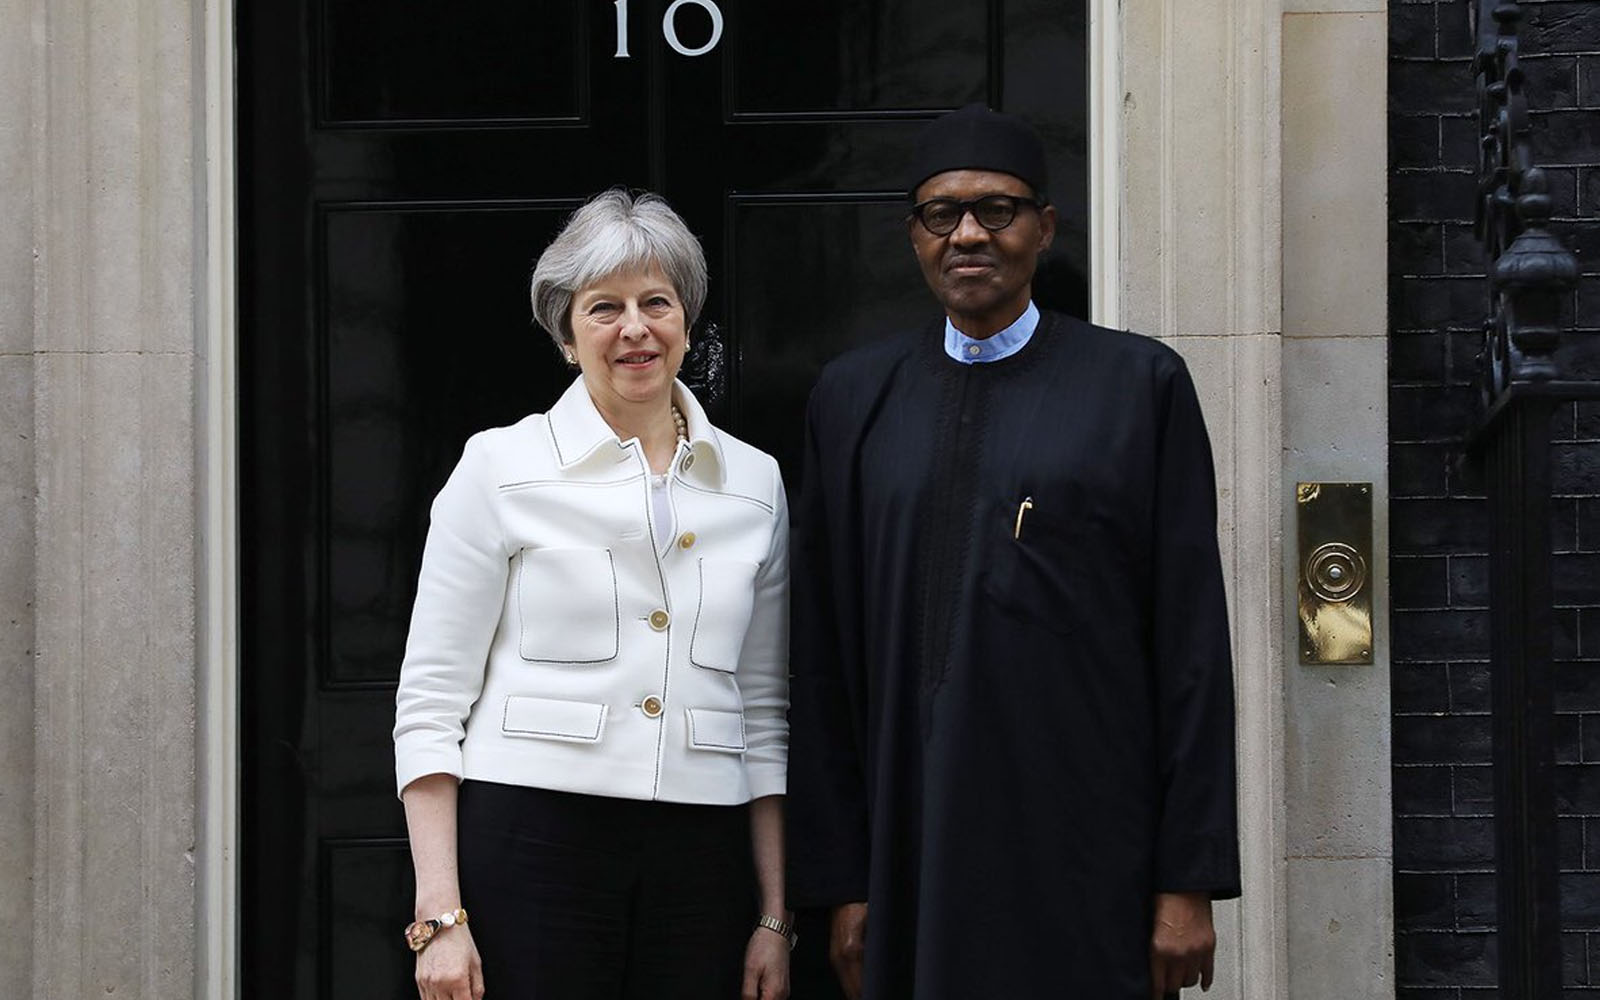 Britain to boost trade in Africa - PM May